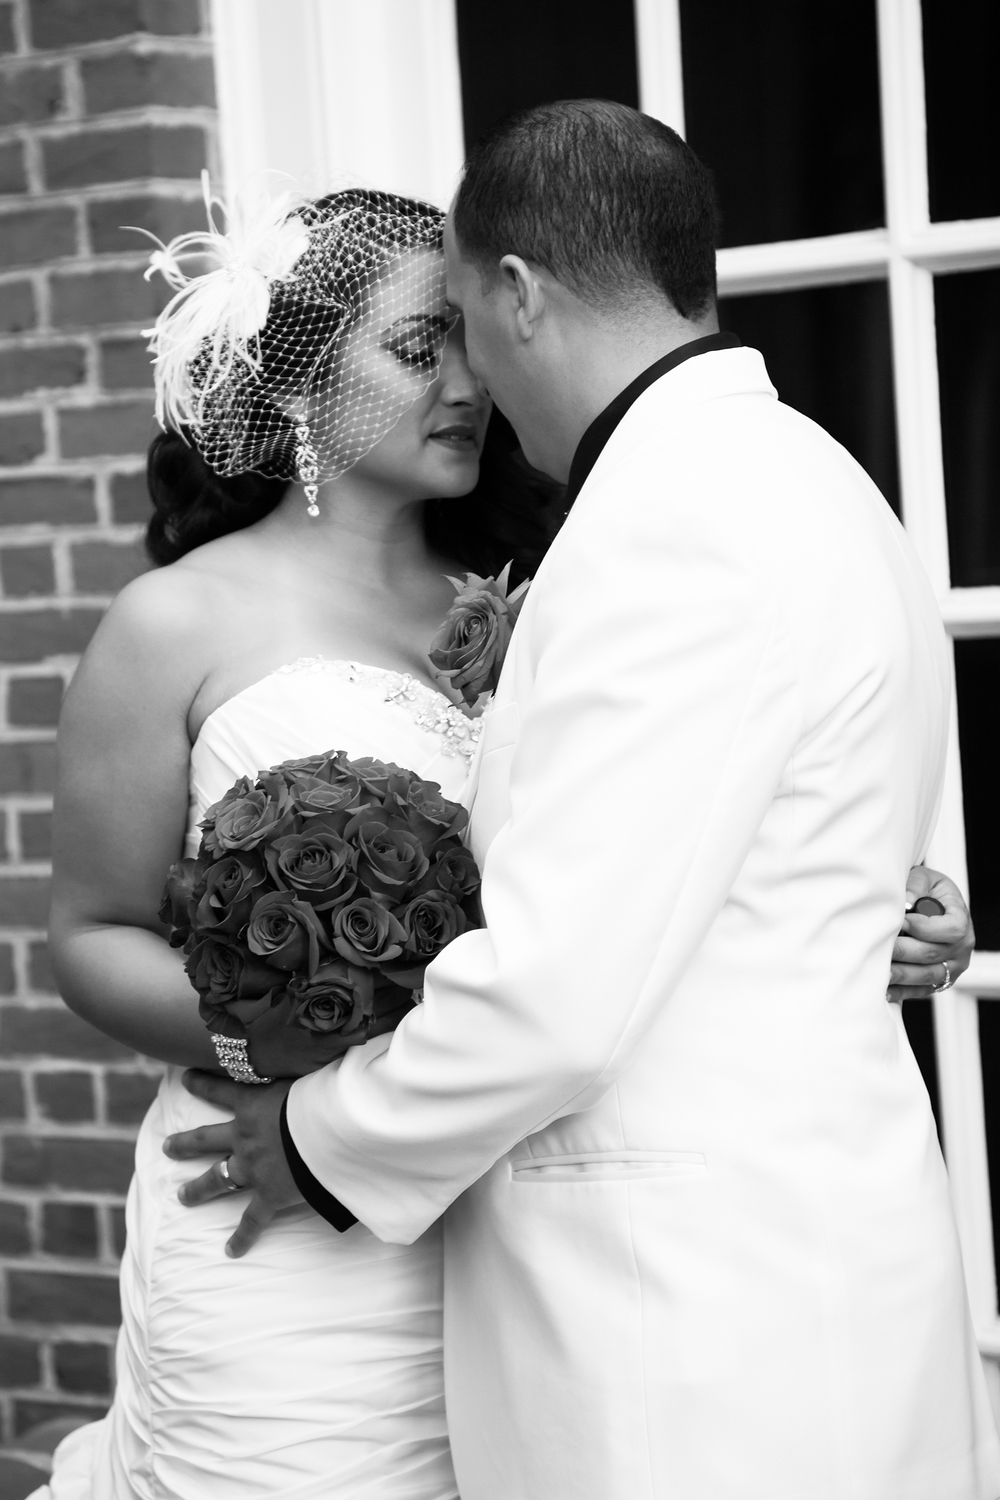 Orlando Wedding-Brazen Photo-Lopez-21.jpg